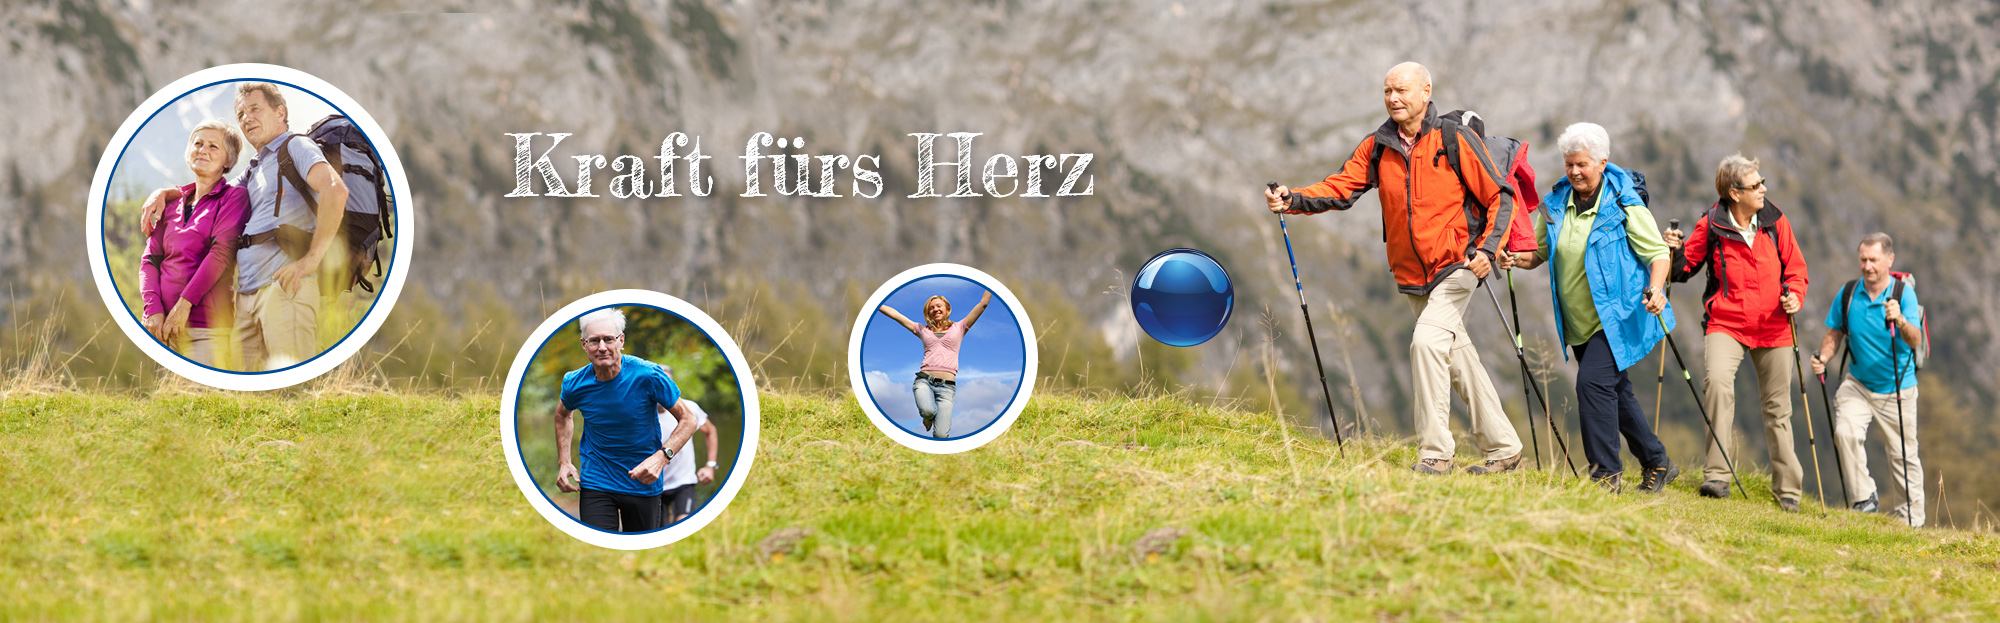 Kraft fürs Herz Background